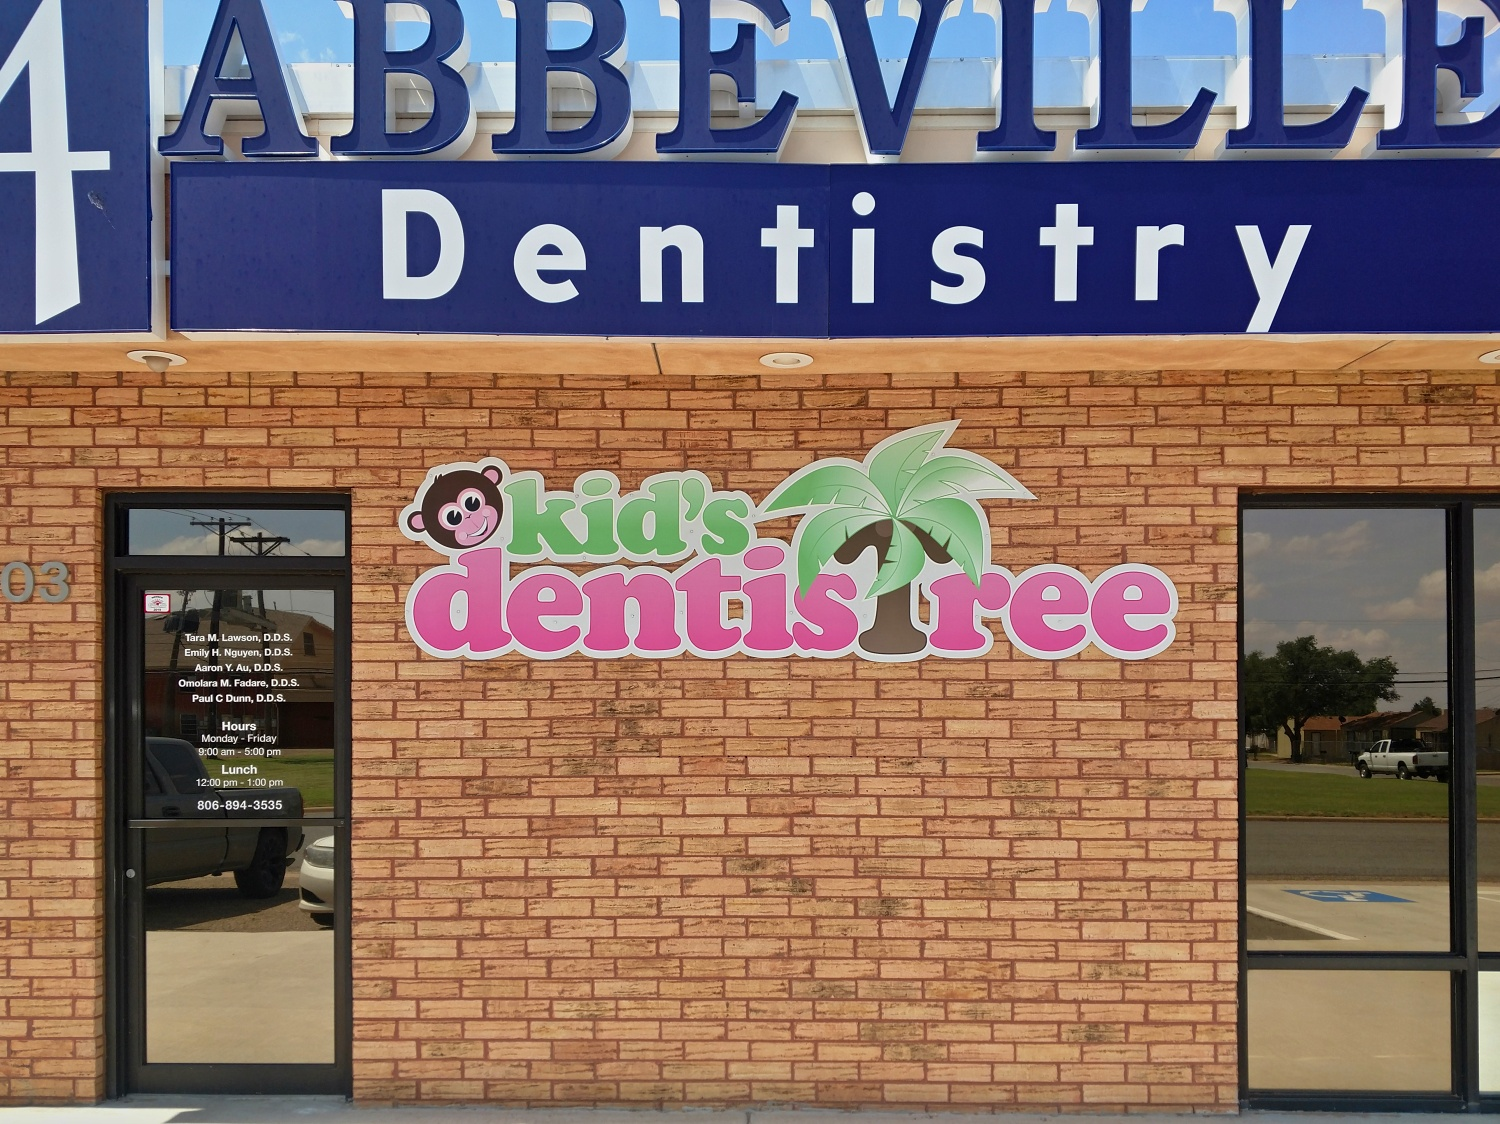 Abbeville - Kid's Dentistree